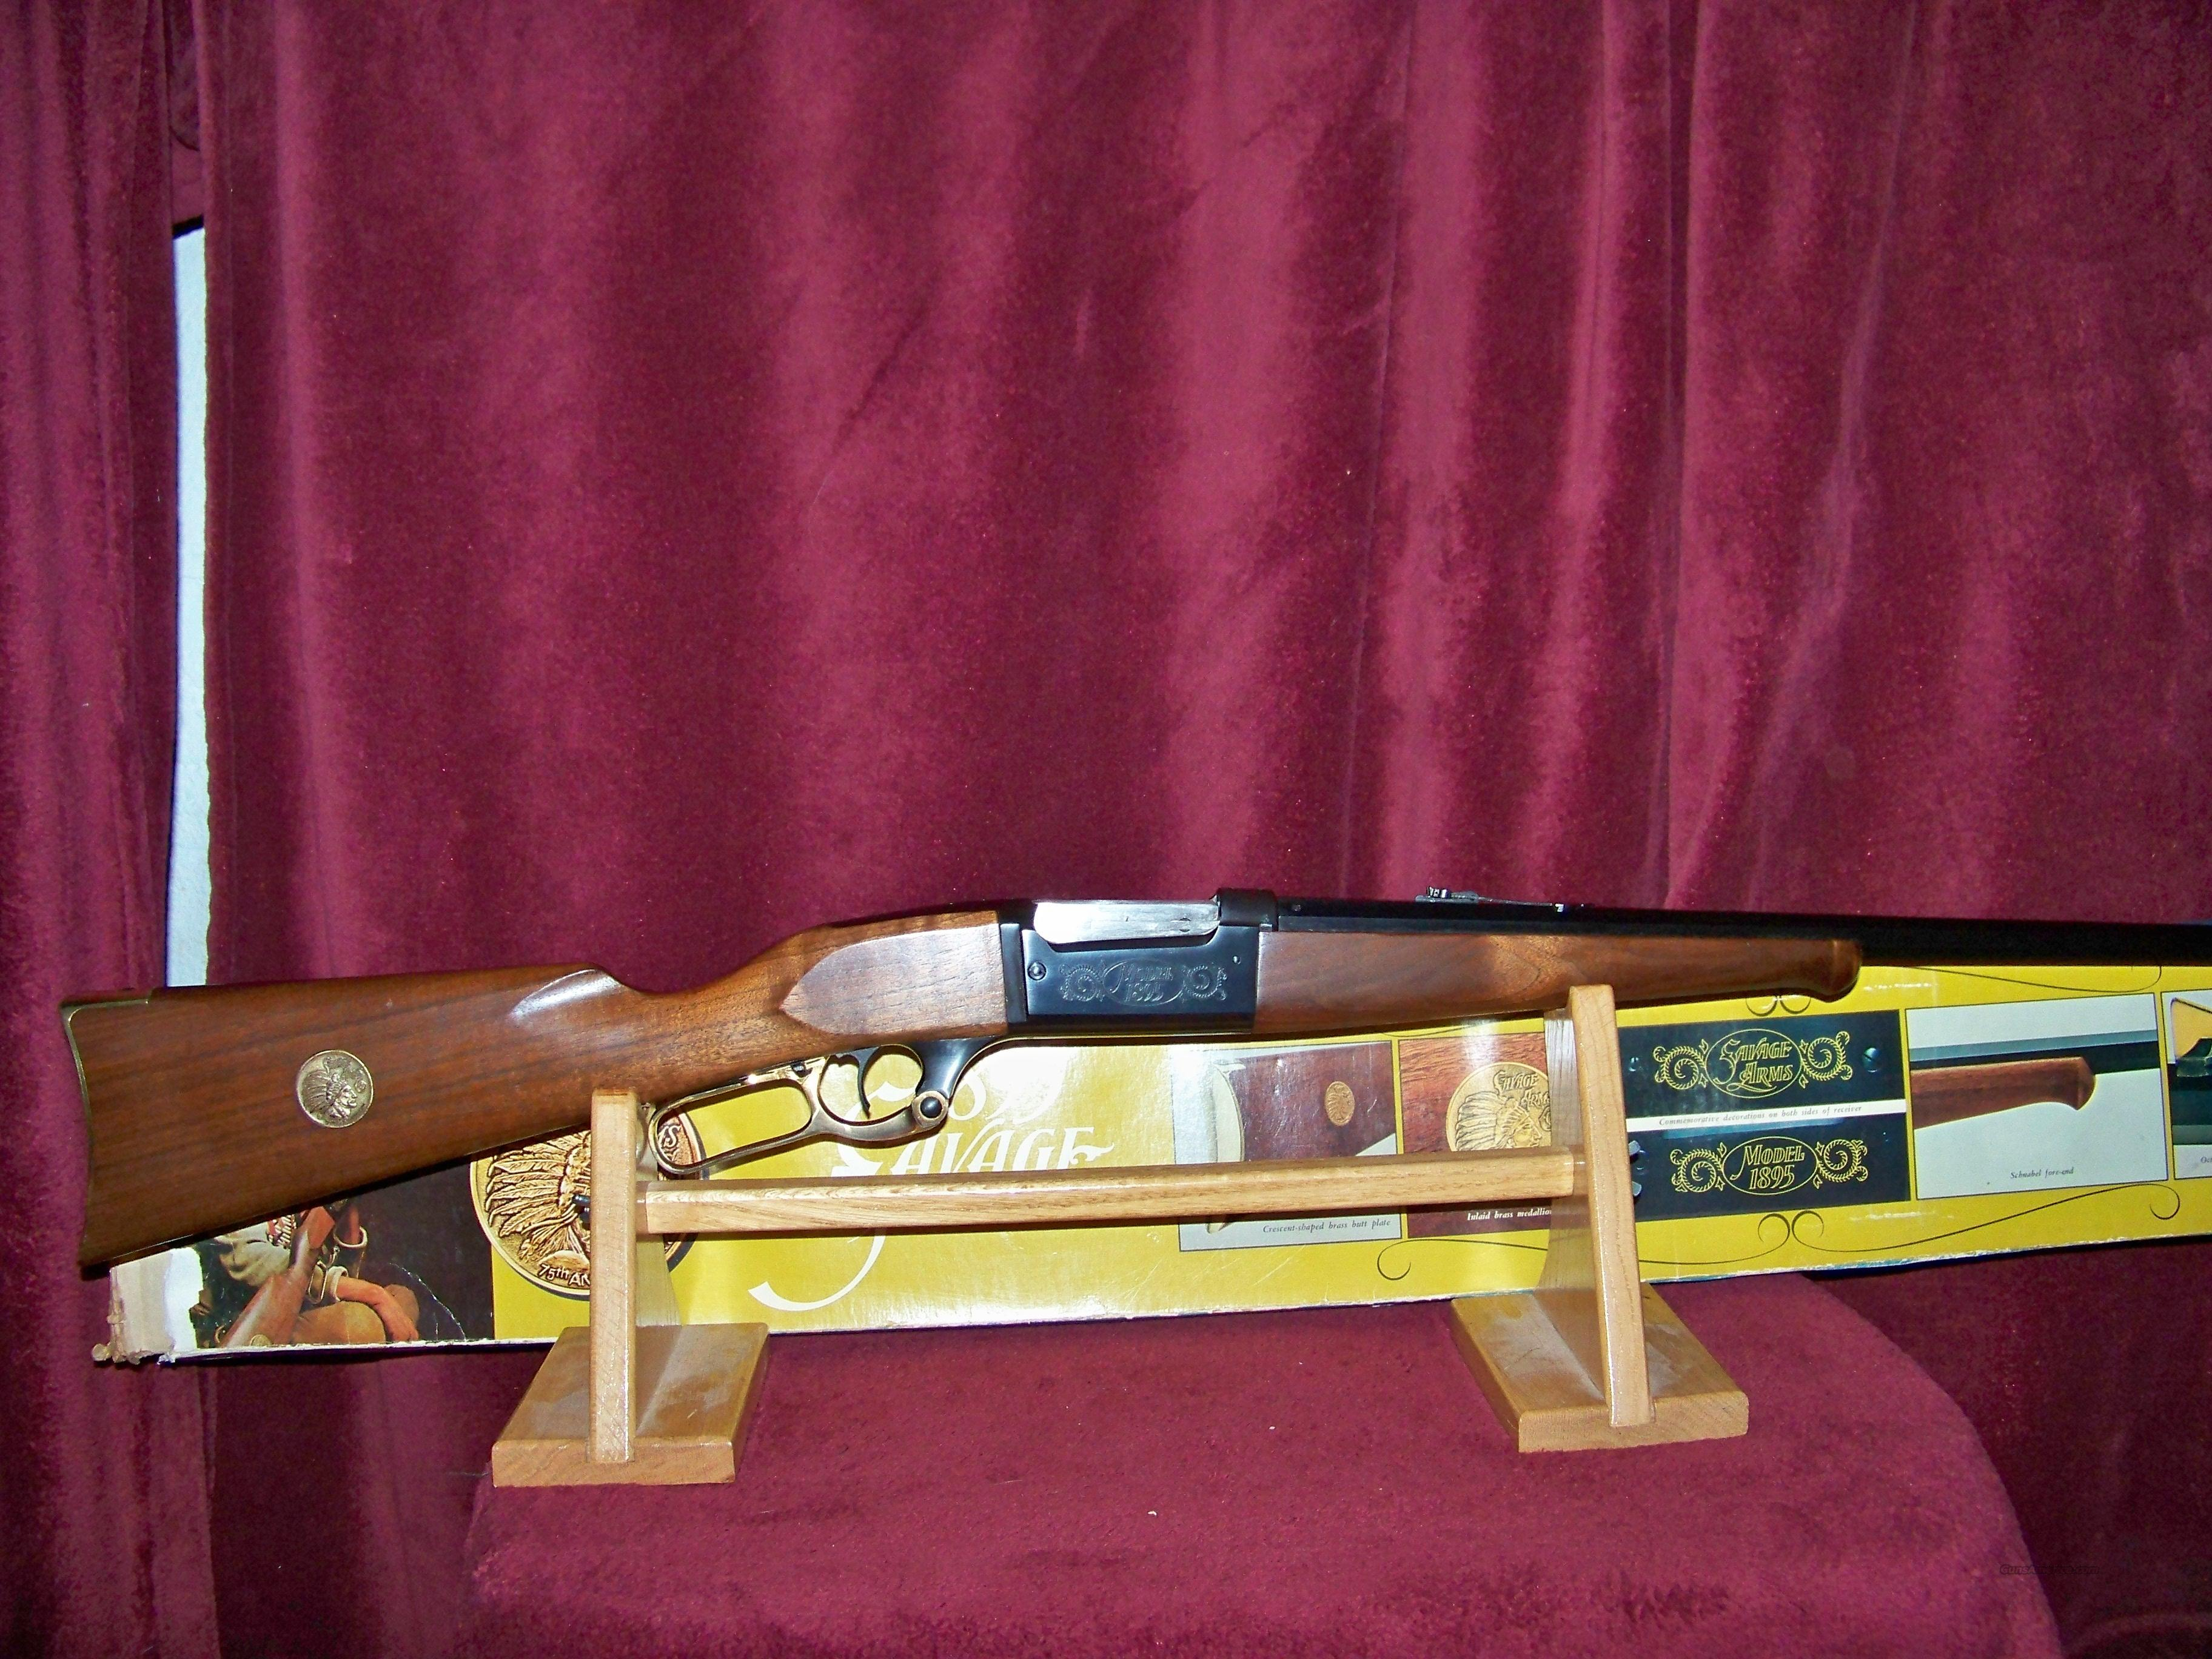 SAVAGE MODEL 1895 75TH ANNIVERSARY  Guns > Rifles > Savage Rifles > Model 95/99 Family